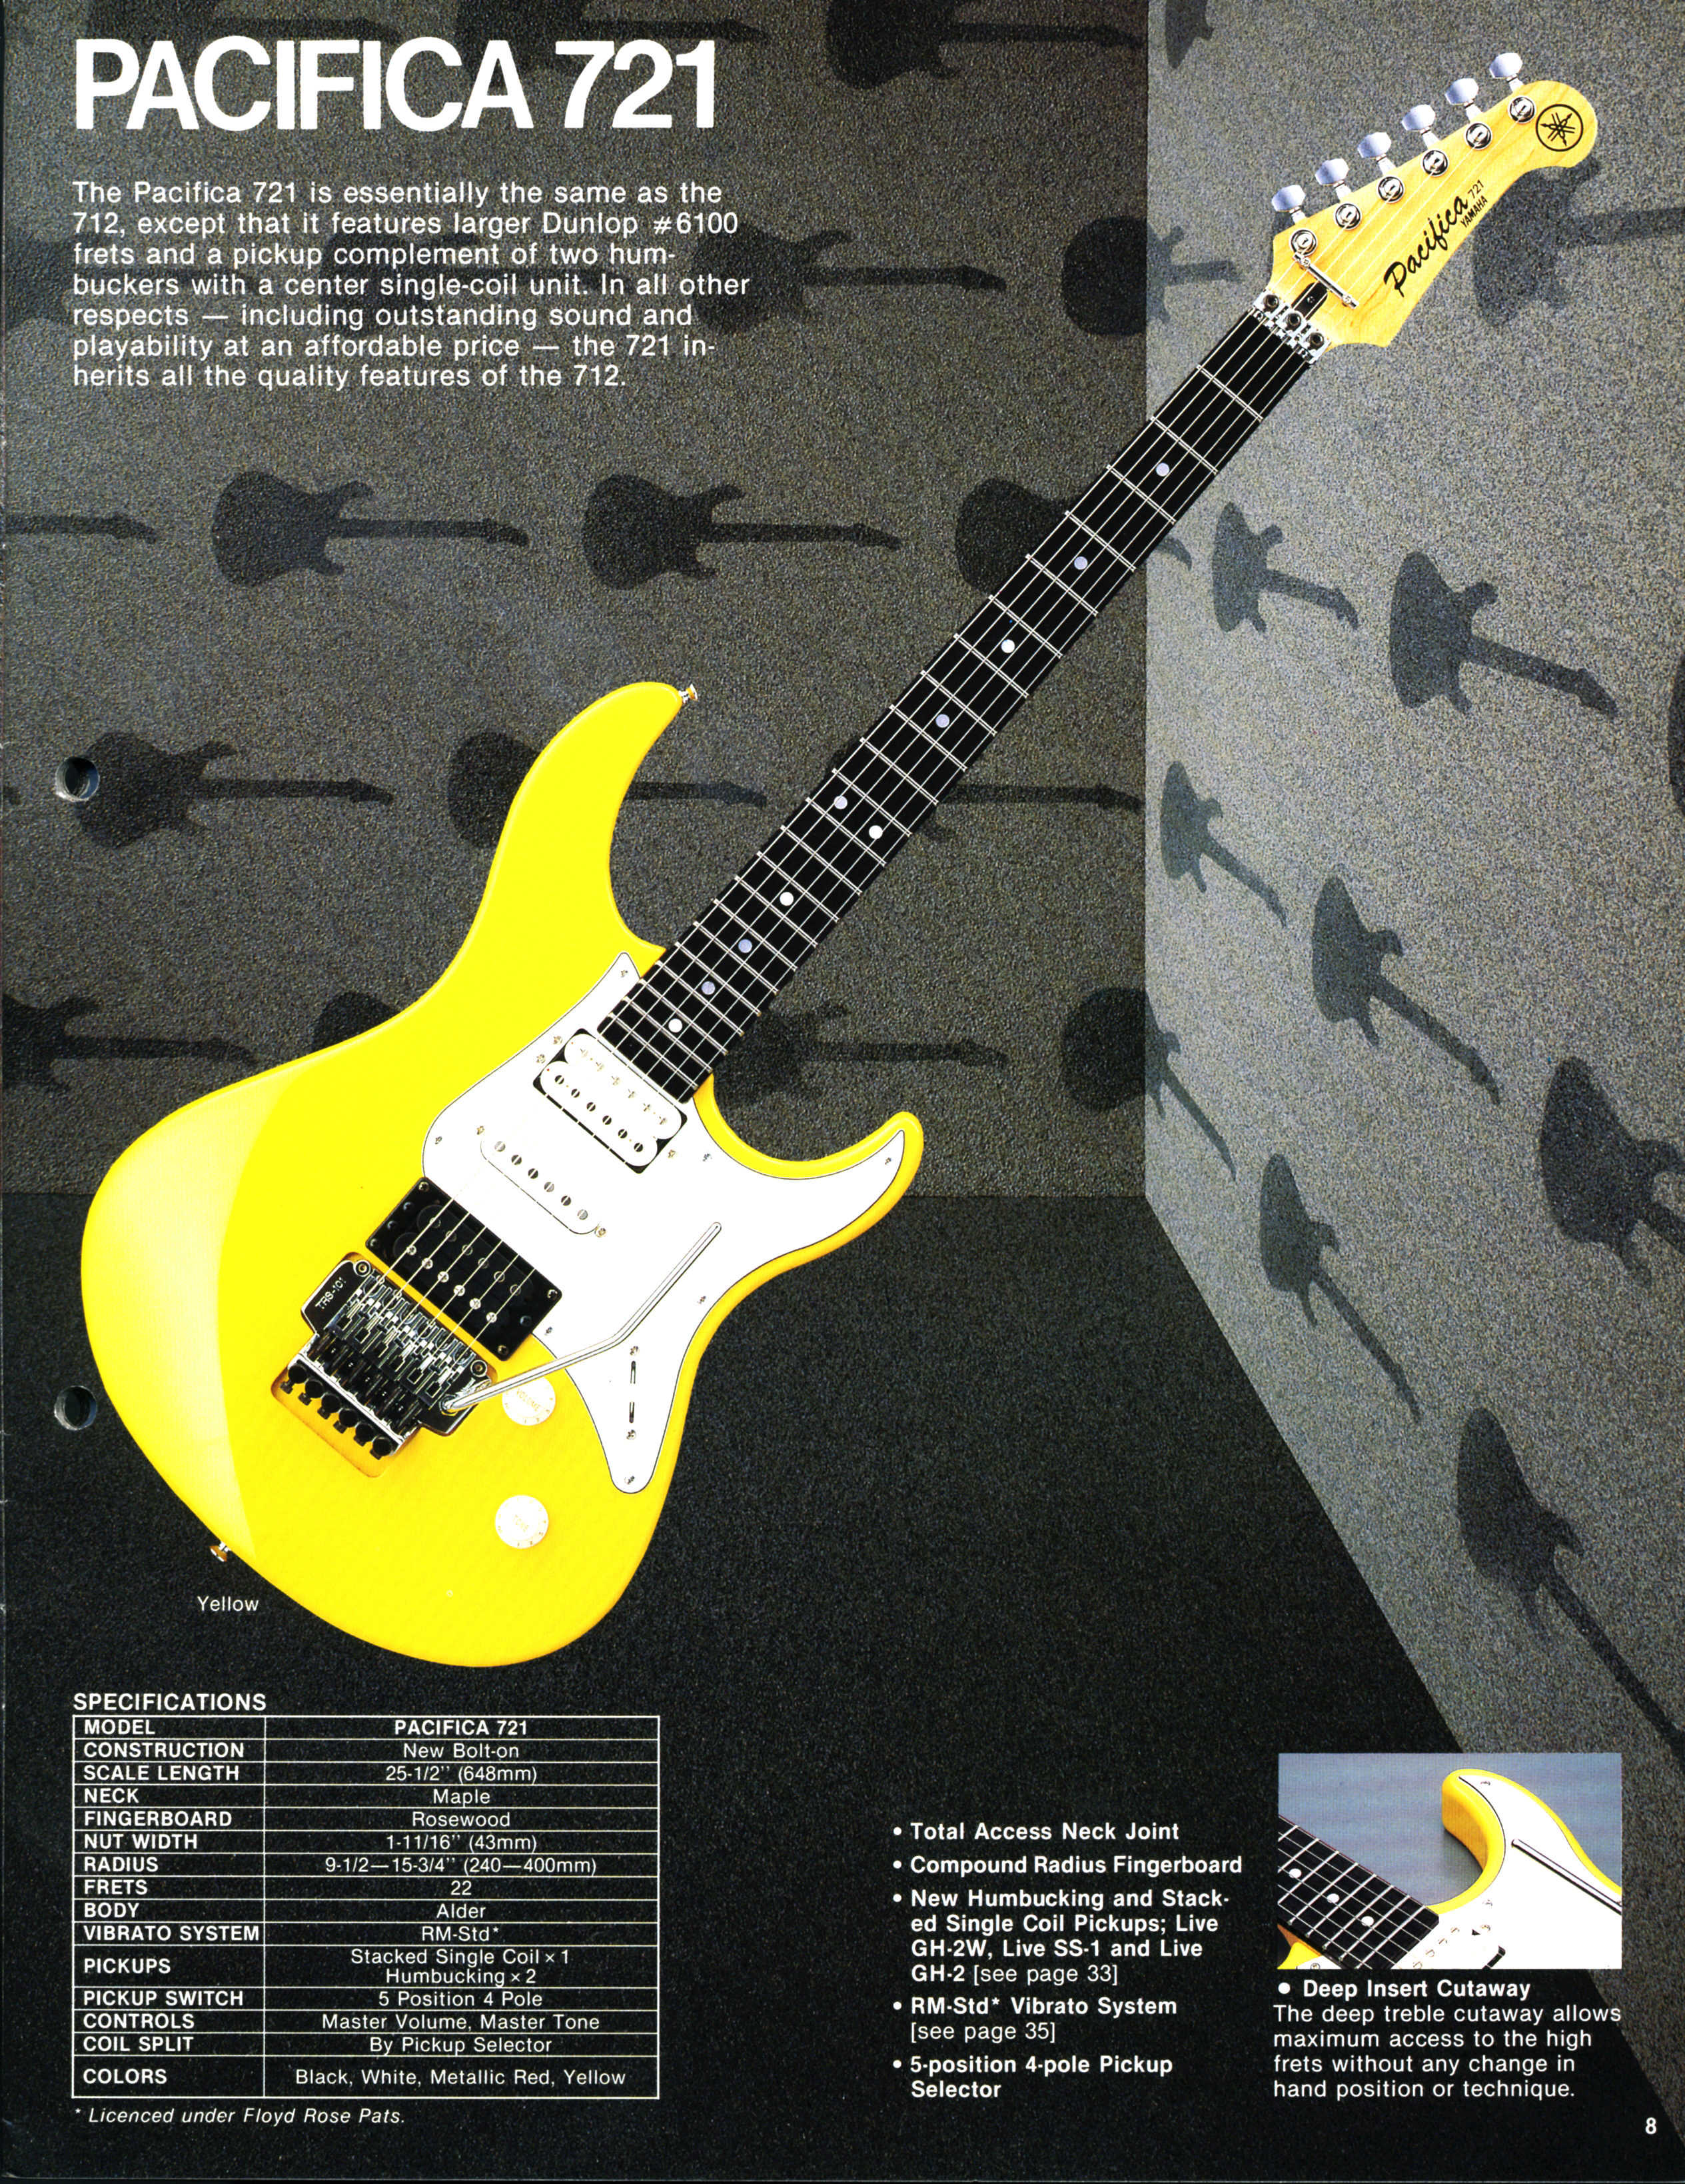 yamaha pacifica 721 catalog yamaha pacifica 721 specifications yamaha pacifica guitar wiring diagram at bayanpartner.co